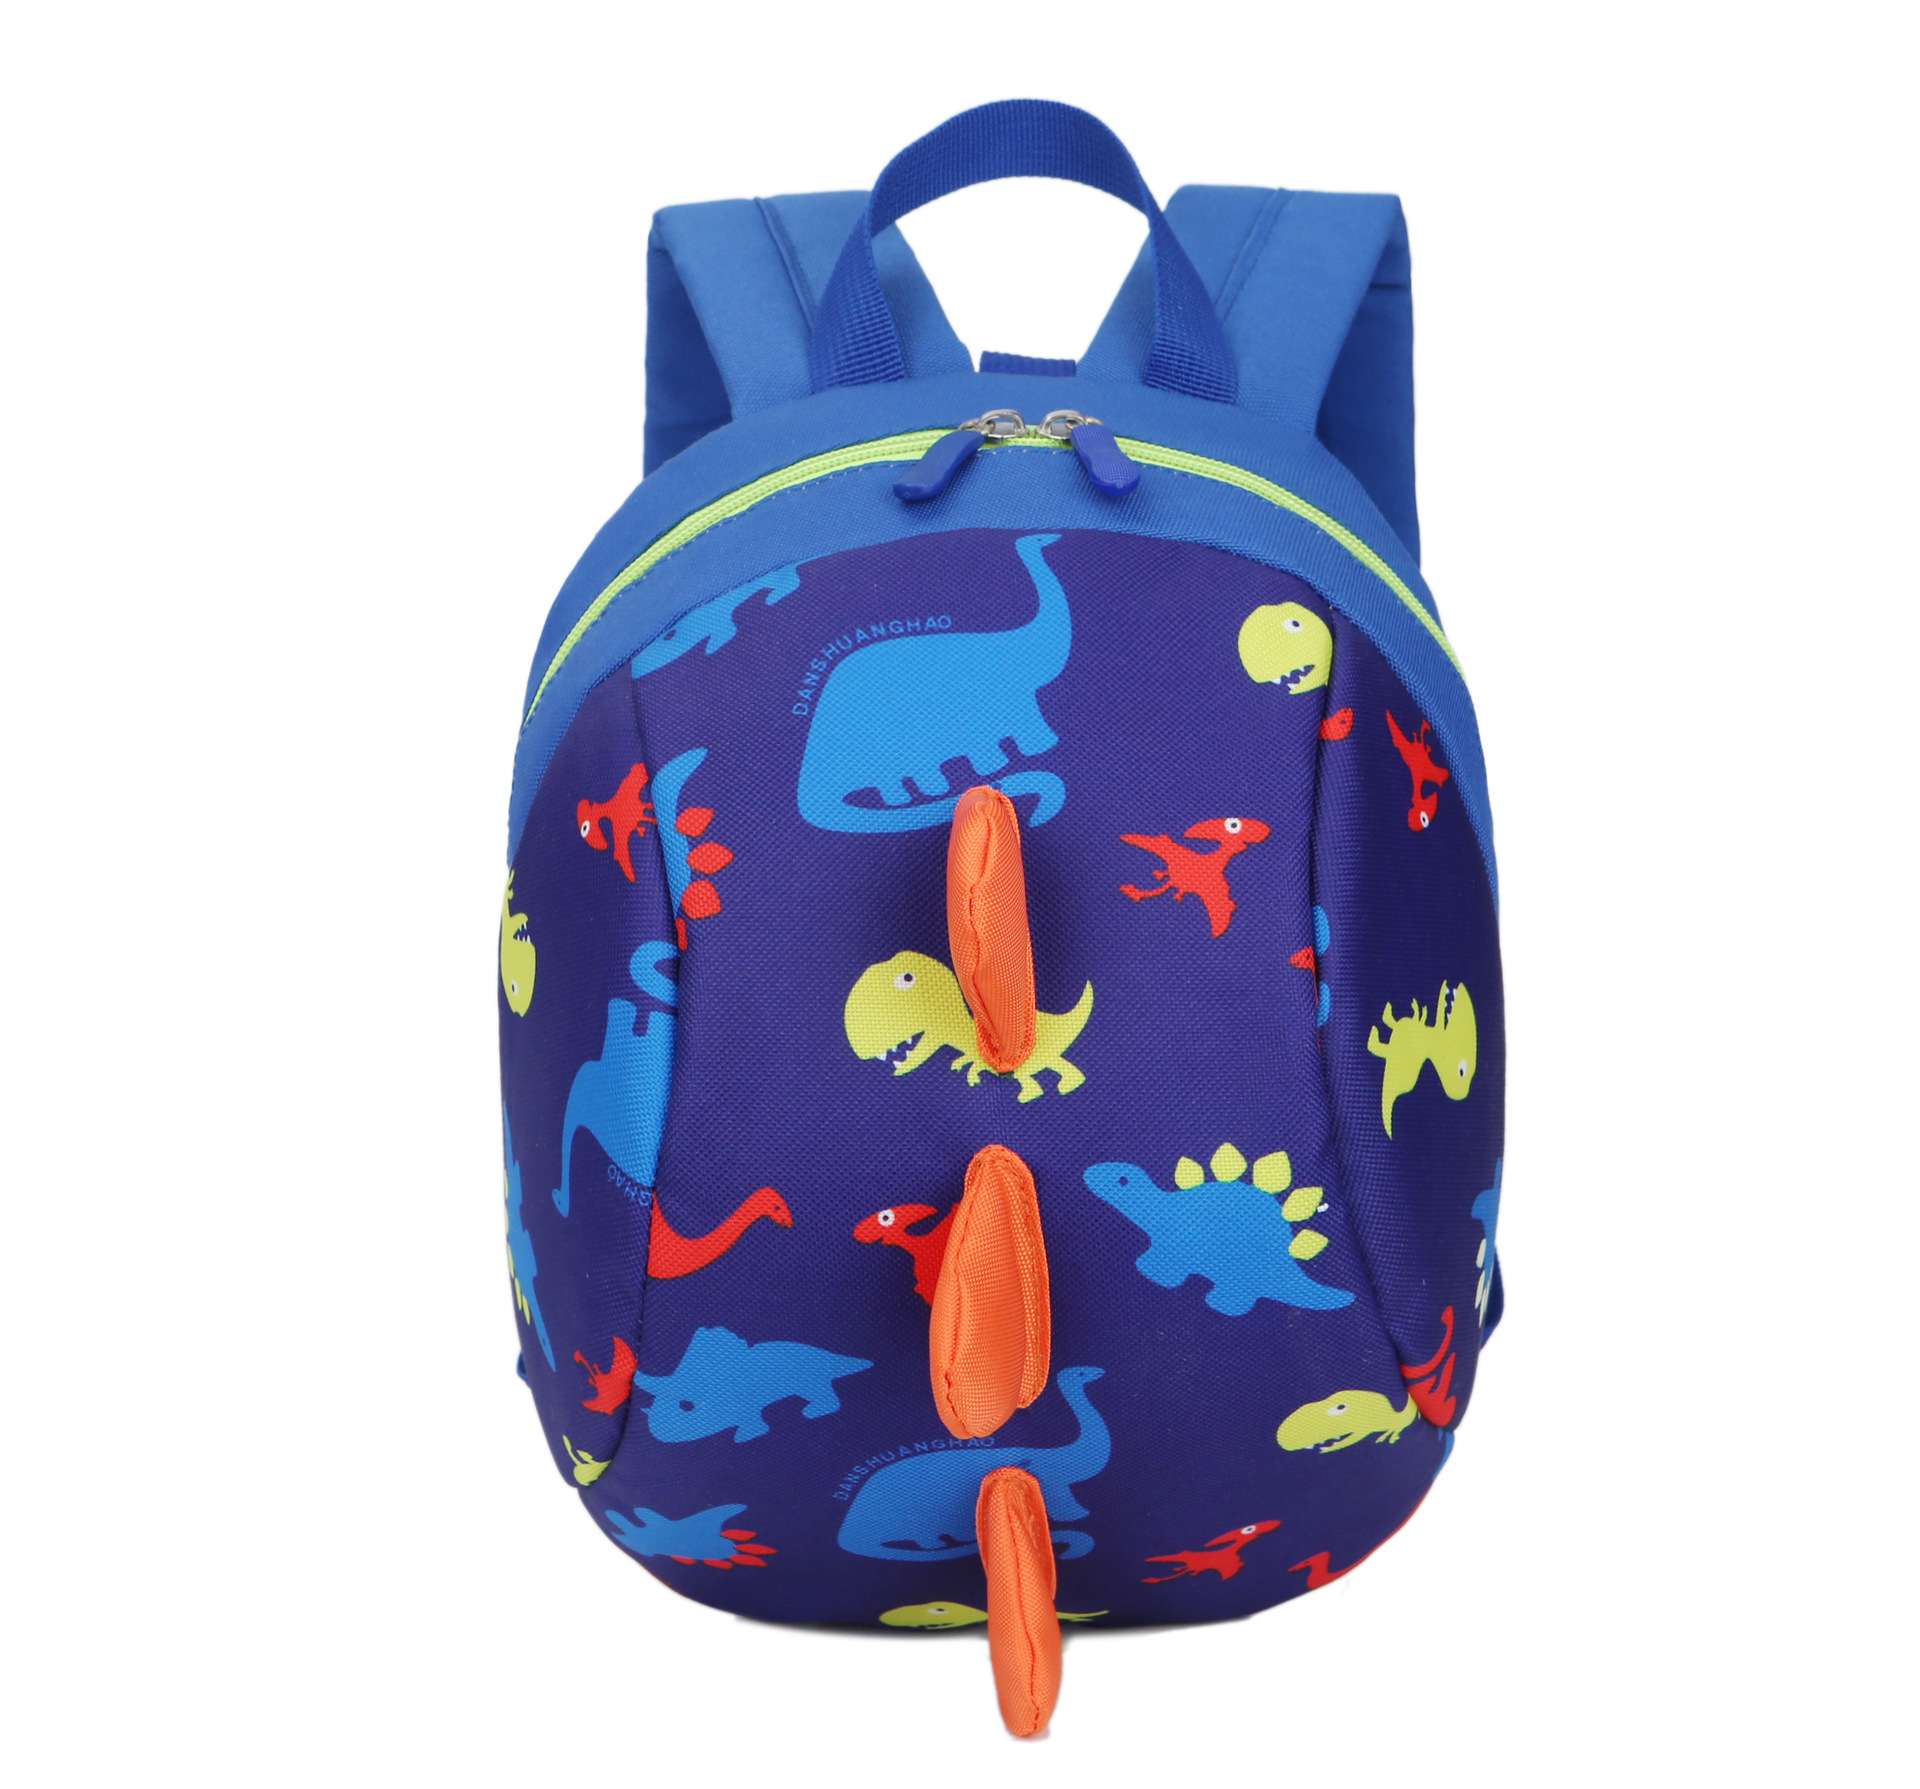 Cute <font><b>School</b></font> <font><b>Backpack</b></font> Anti-lost <font><b>Kids</b></font> Bag Cartoon Animal Dinosaur Children <font><b>Backpacks</b></font> <font><b>for</b></font> Kindergarten baby boys girls <font><b>School</b></font> Bags image